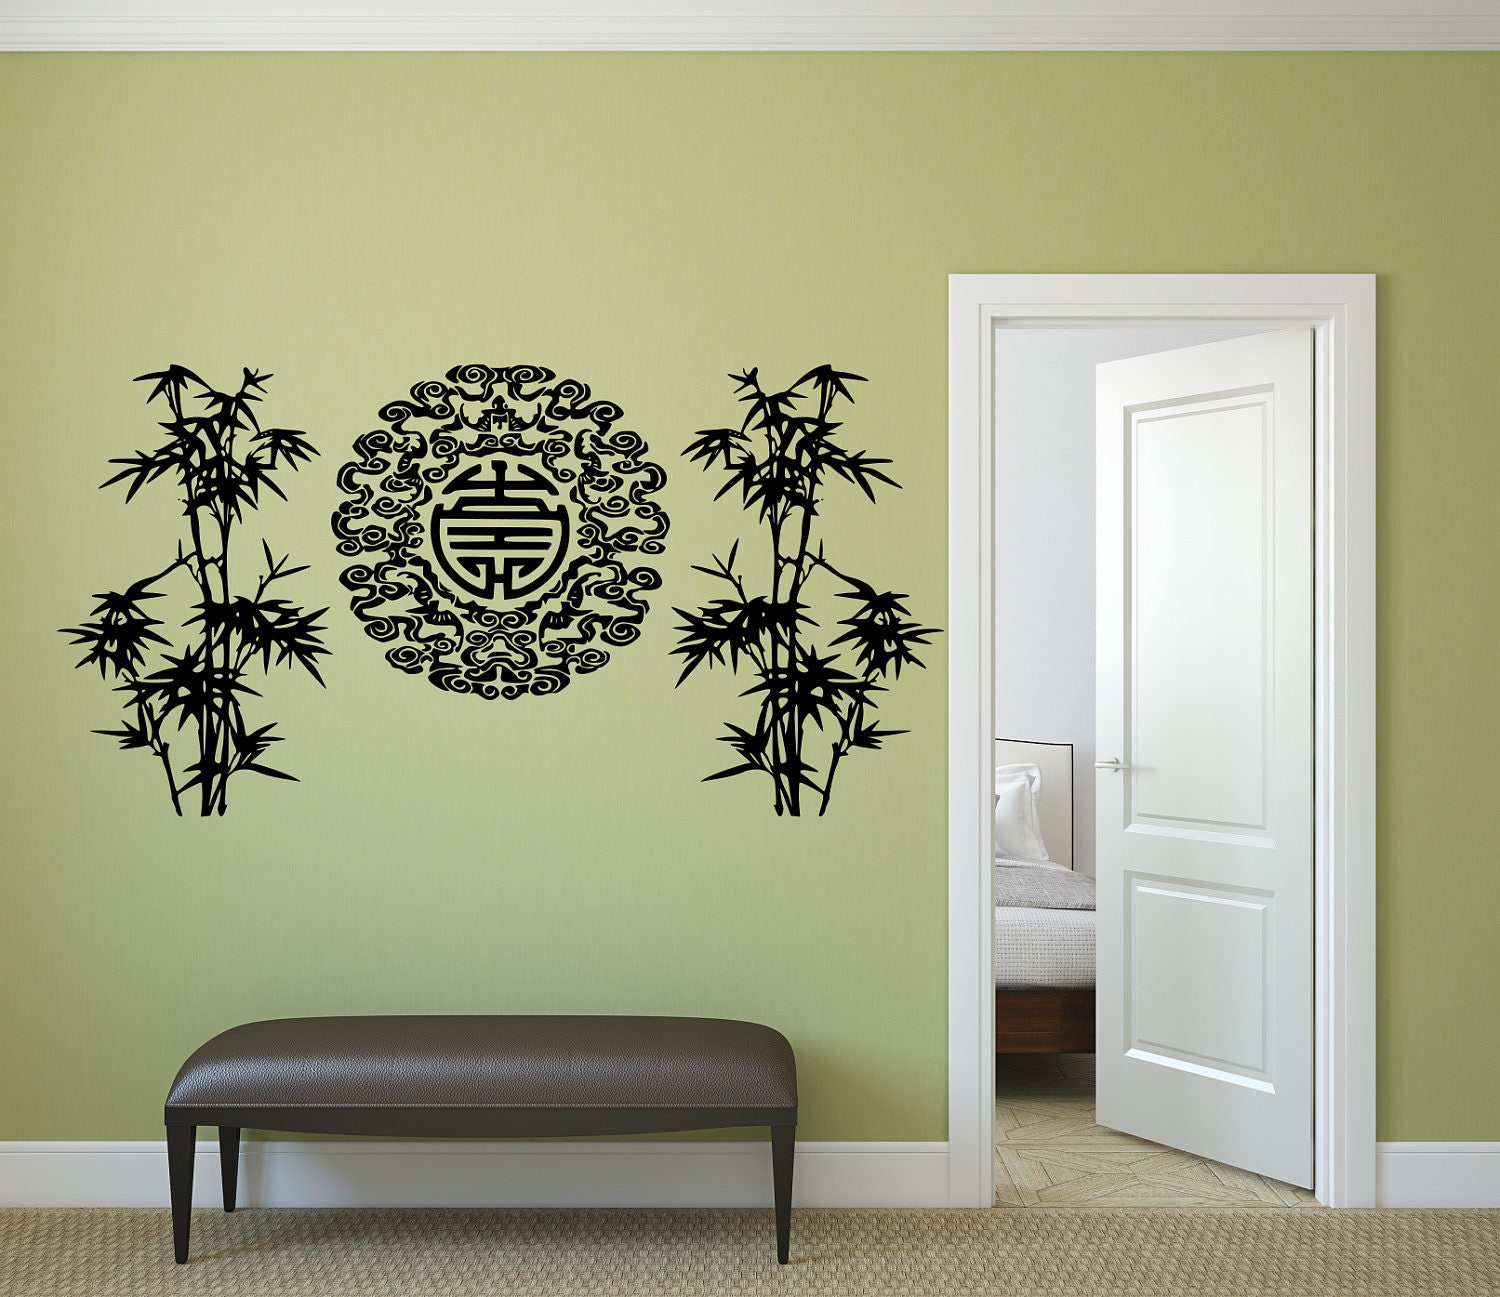 Bamboo tree decals, Bamboo decal, oriental decal, bamboo decals ...